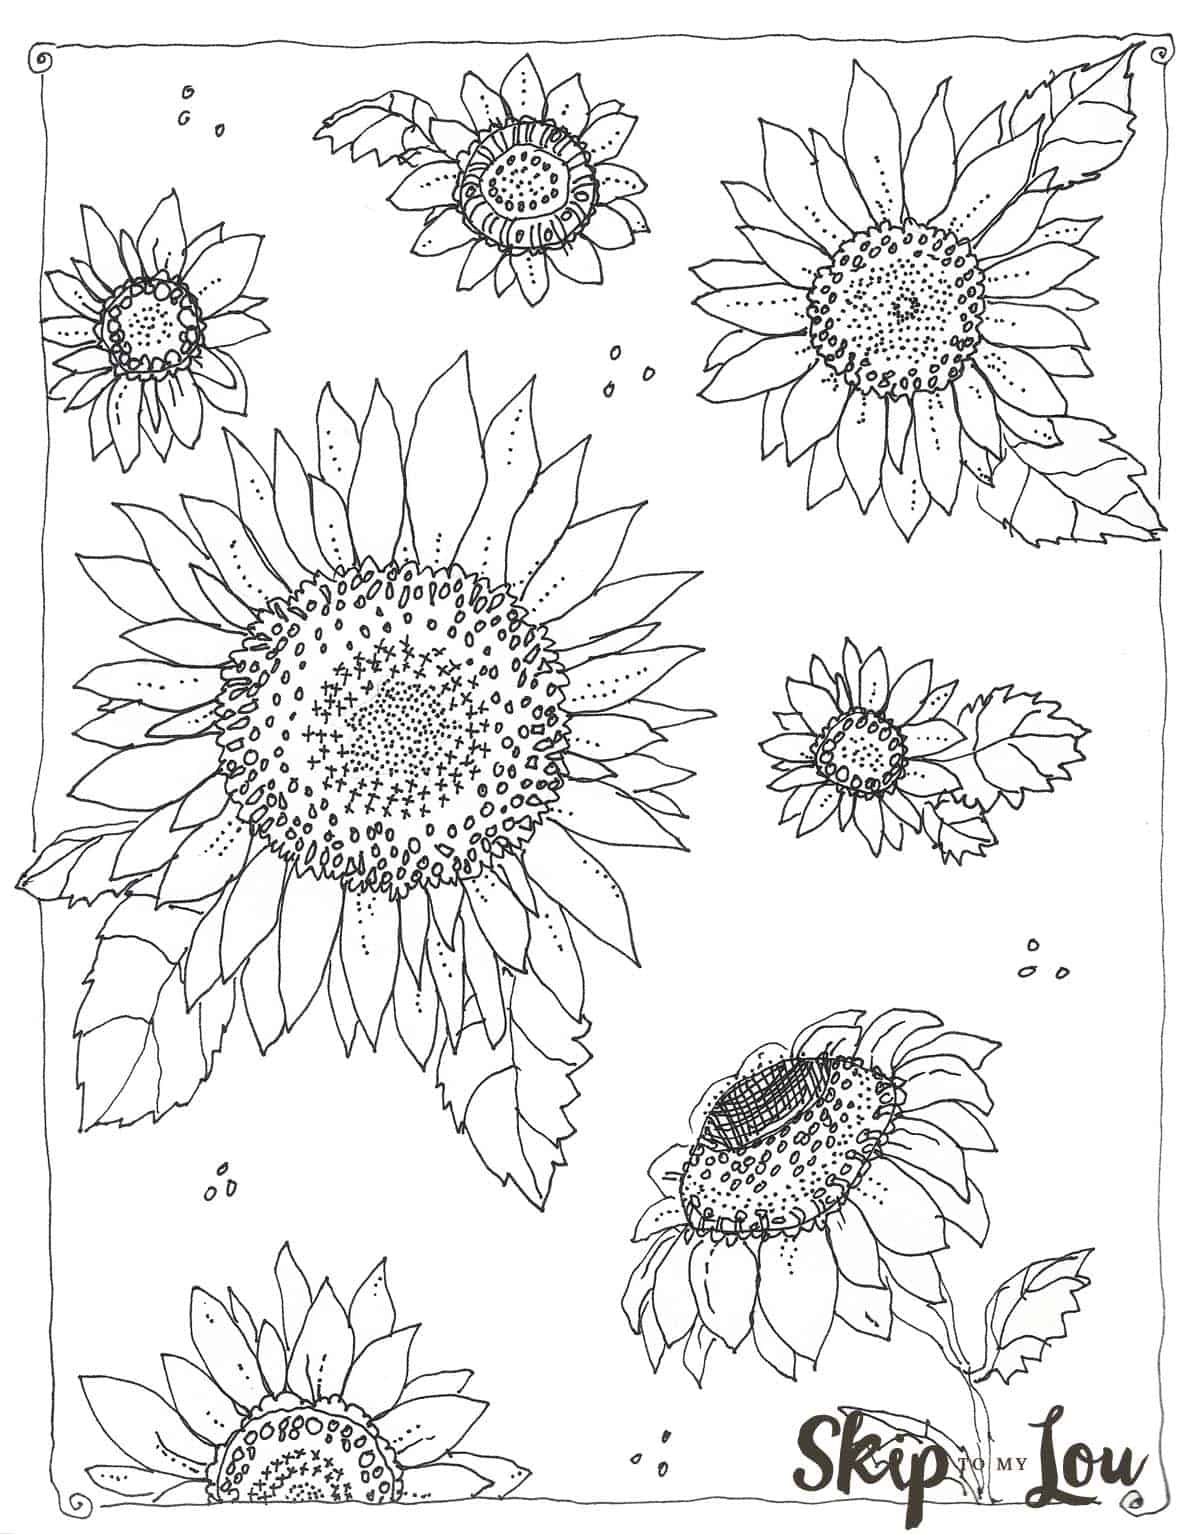 Kansas Day Free Sunflower Coloring Page